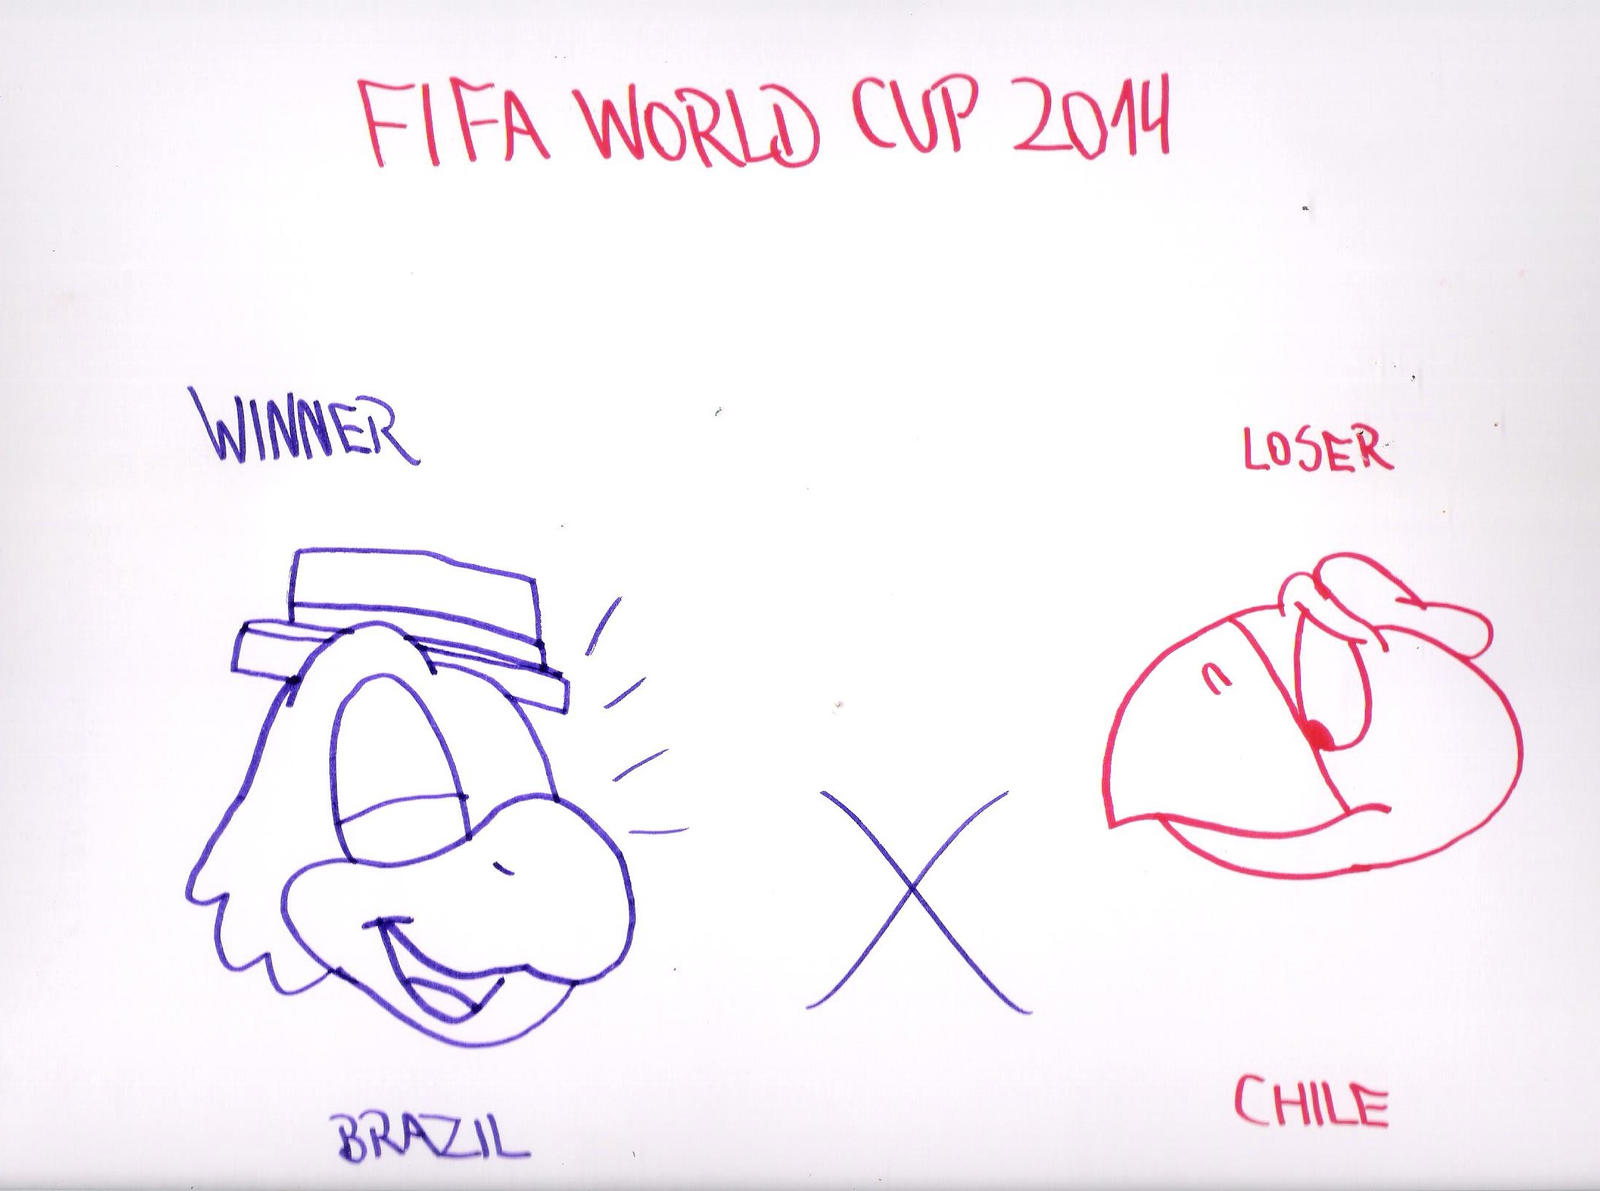 brazil won chile at fifa world cup yesterday by